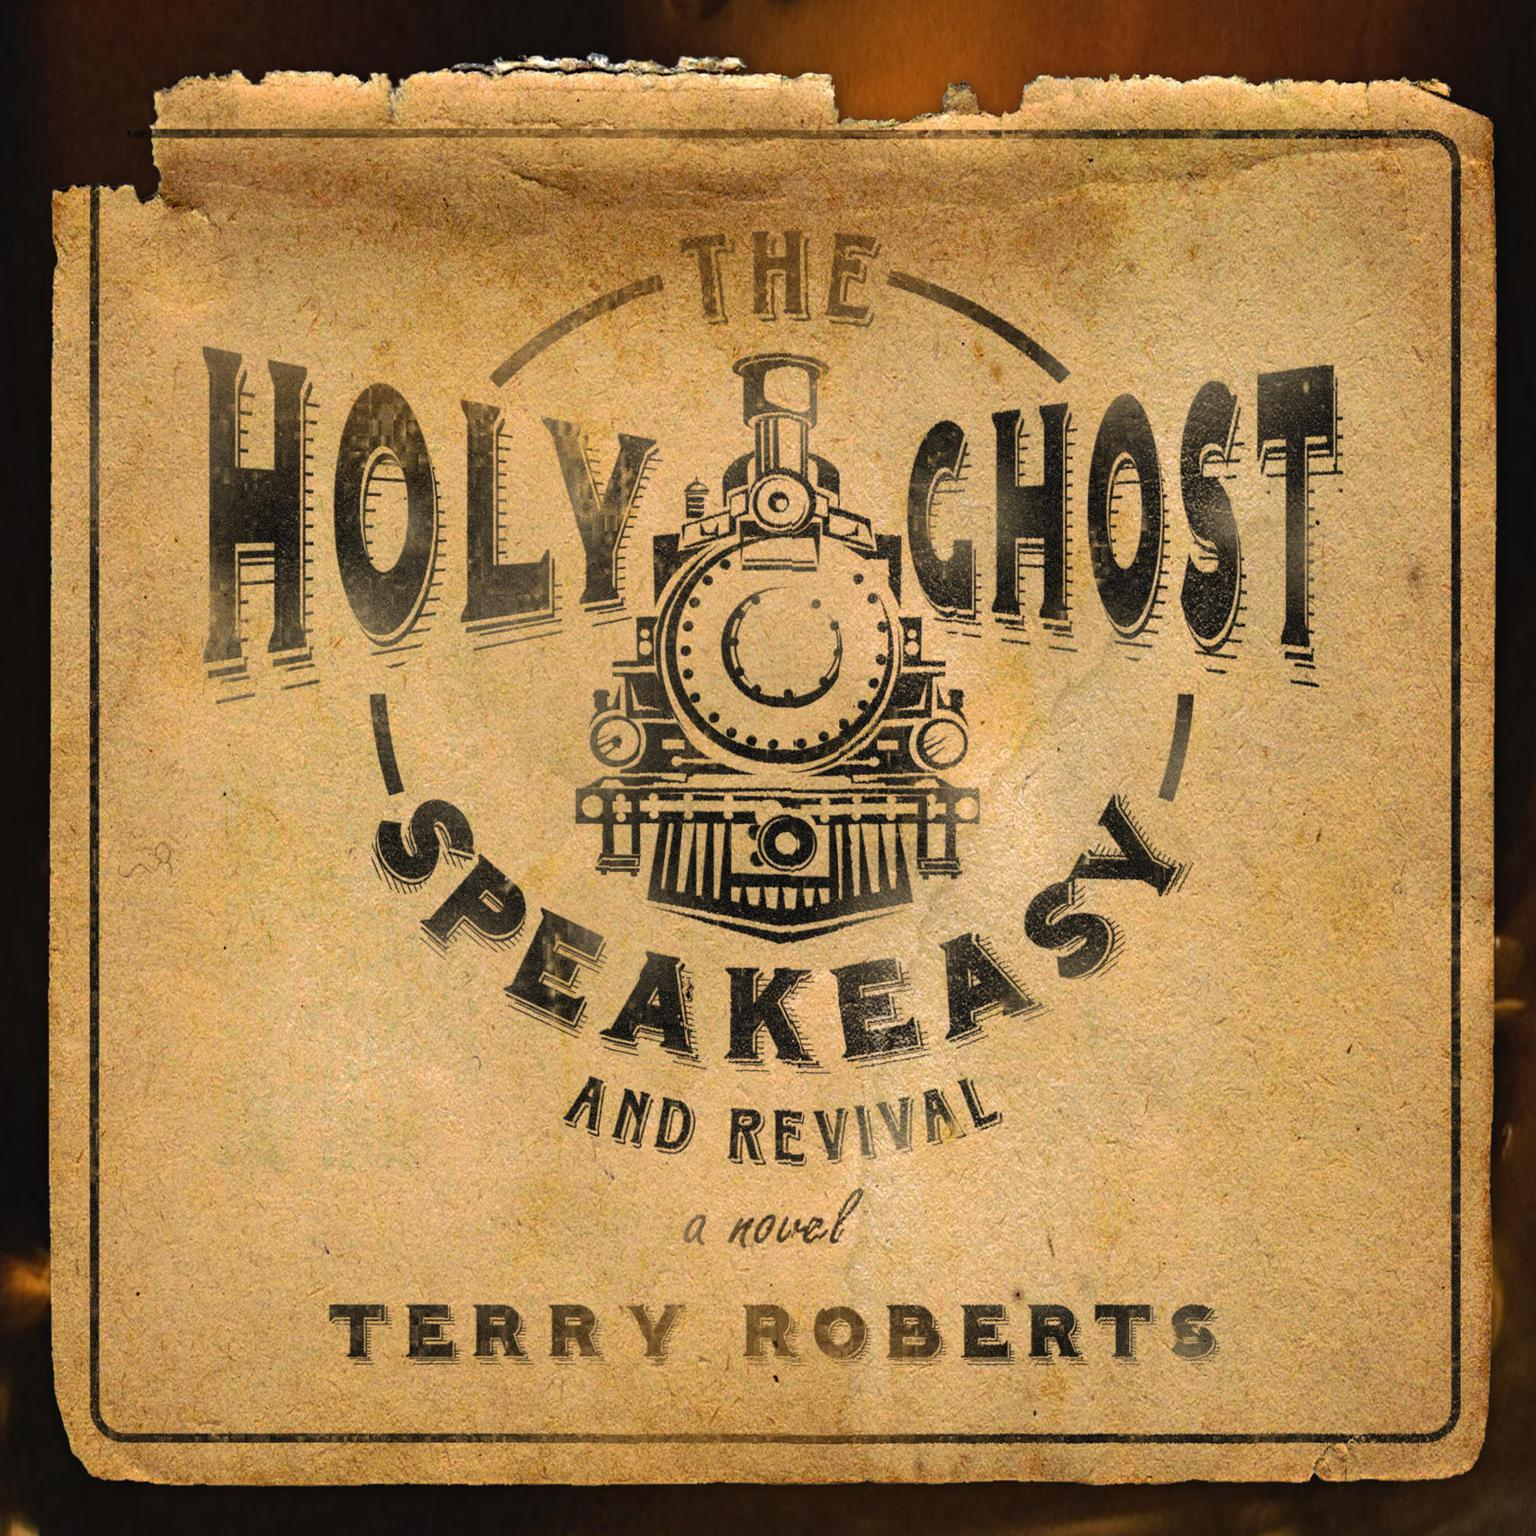 The Holy Ghost Speakeasy and Revival Audiobook